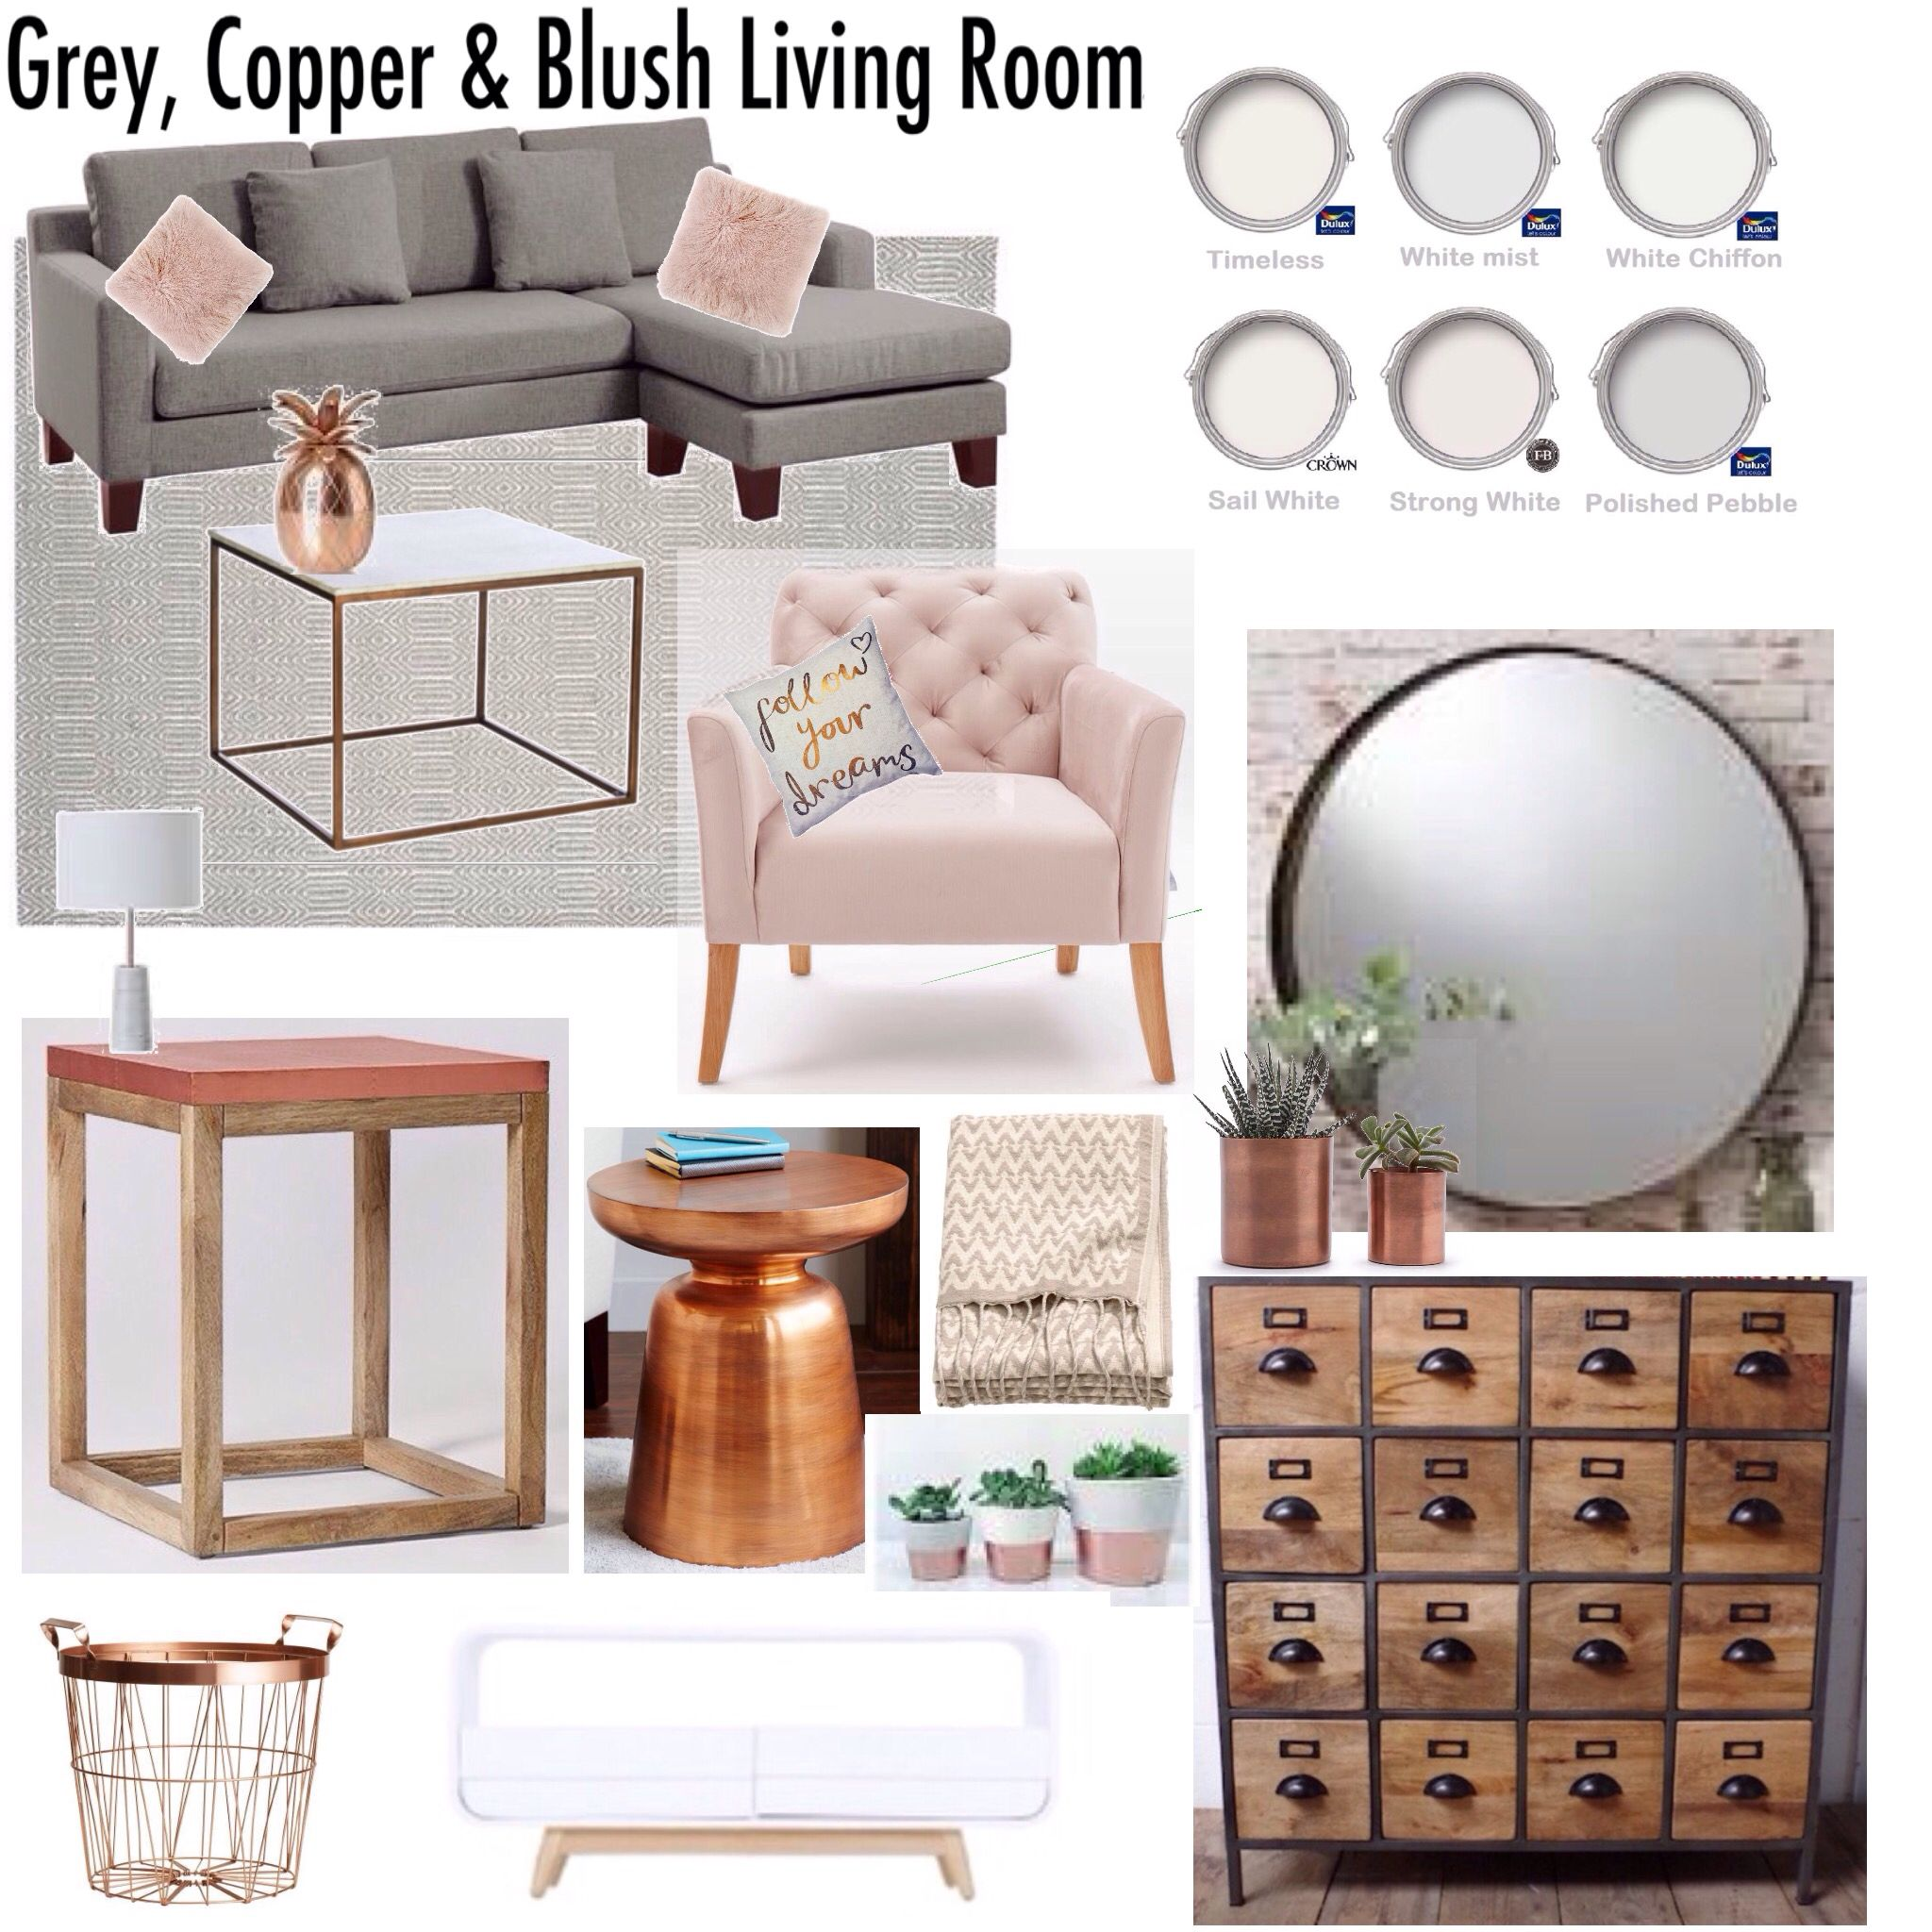 Best Gray Copper Blush Living Room Decor Mood Board Copper 400 x 300